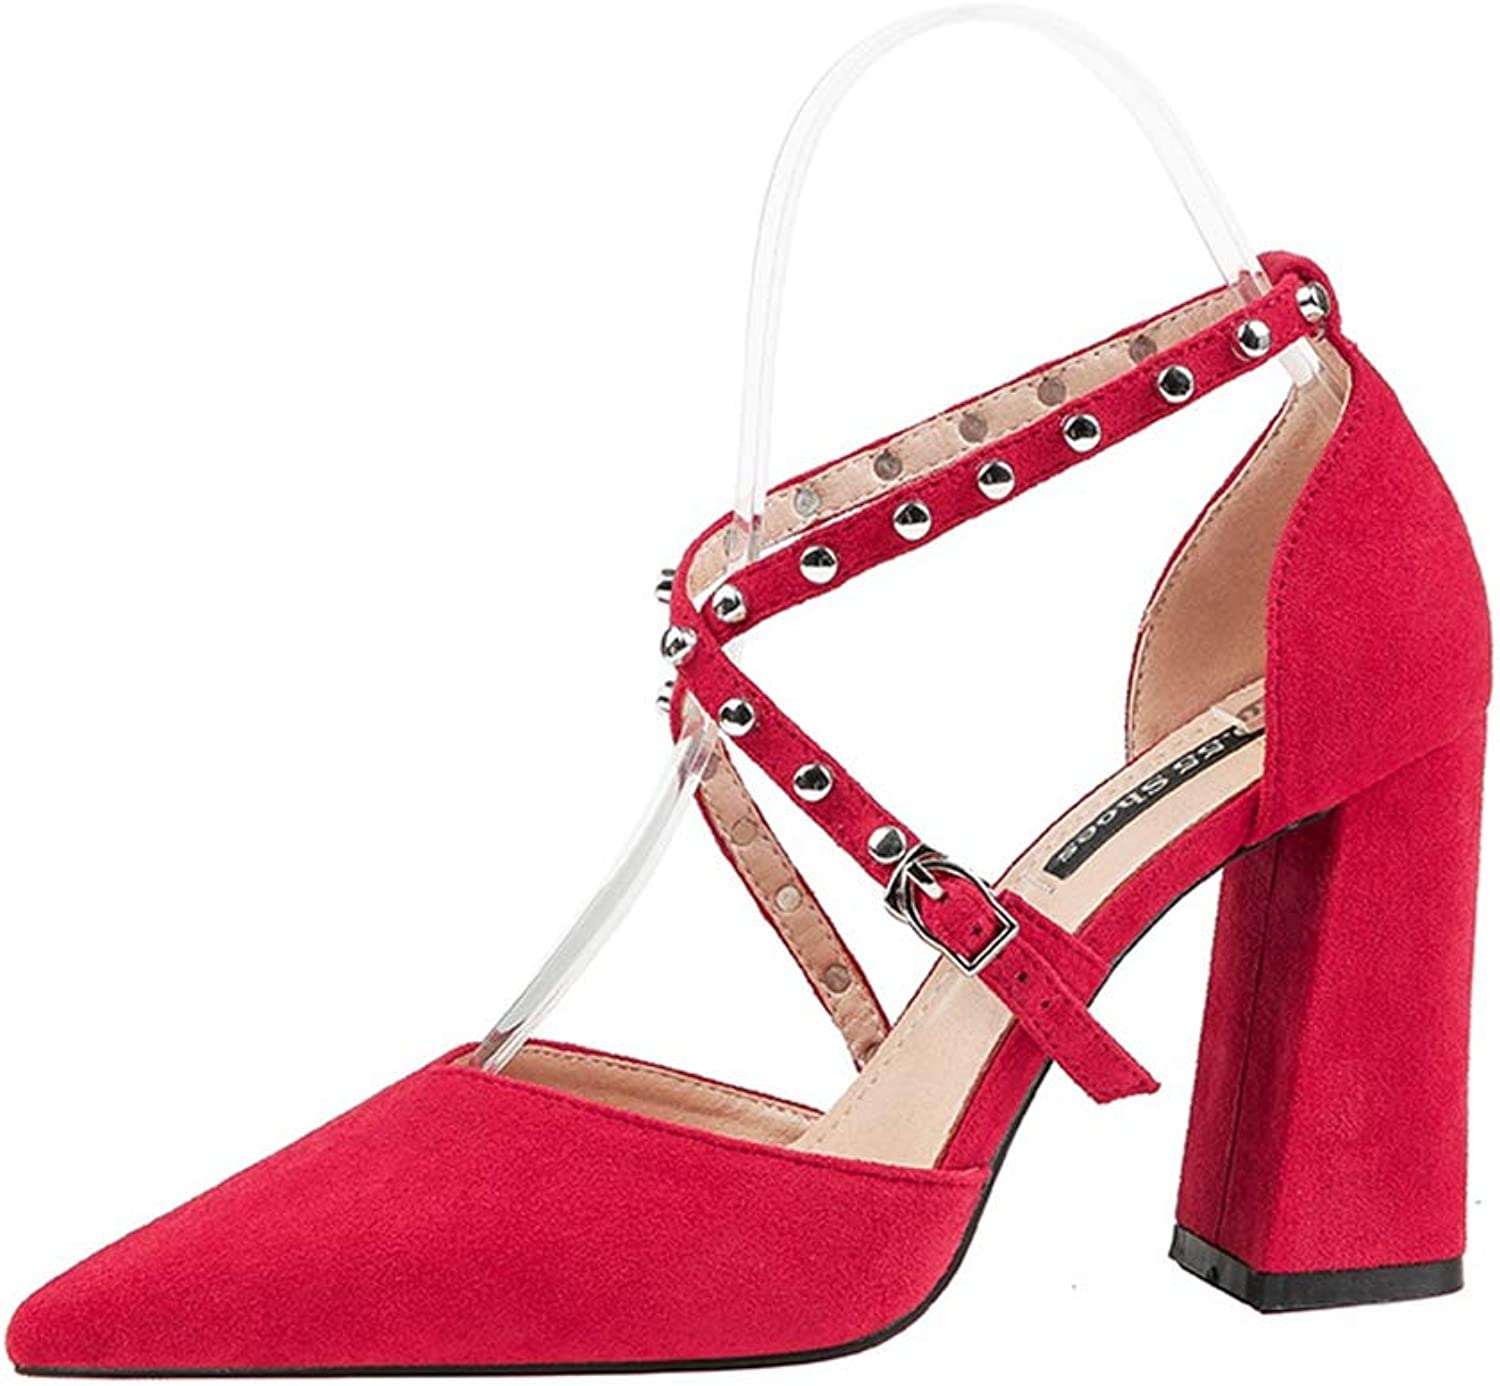 CYBLING Women's Closed Pointed Toe Buckled Crisscross Strap Chunky High Heel Dress Pumps